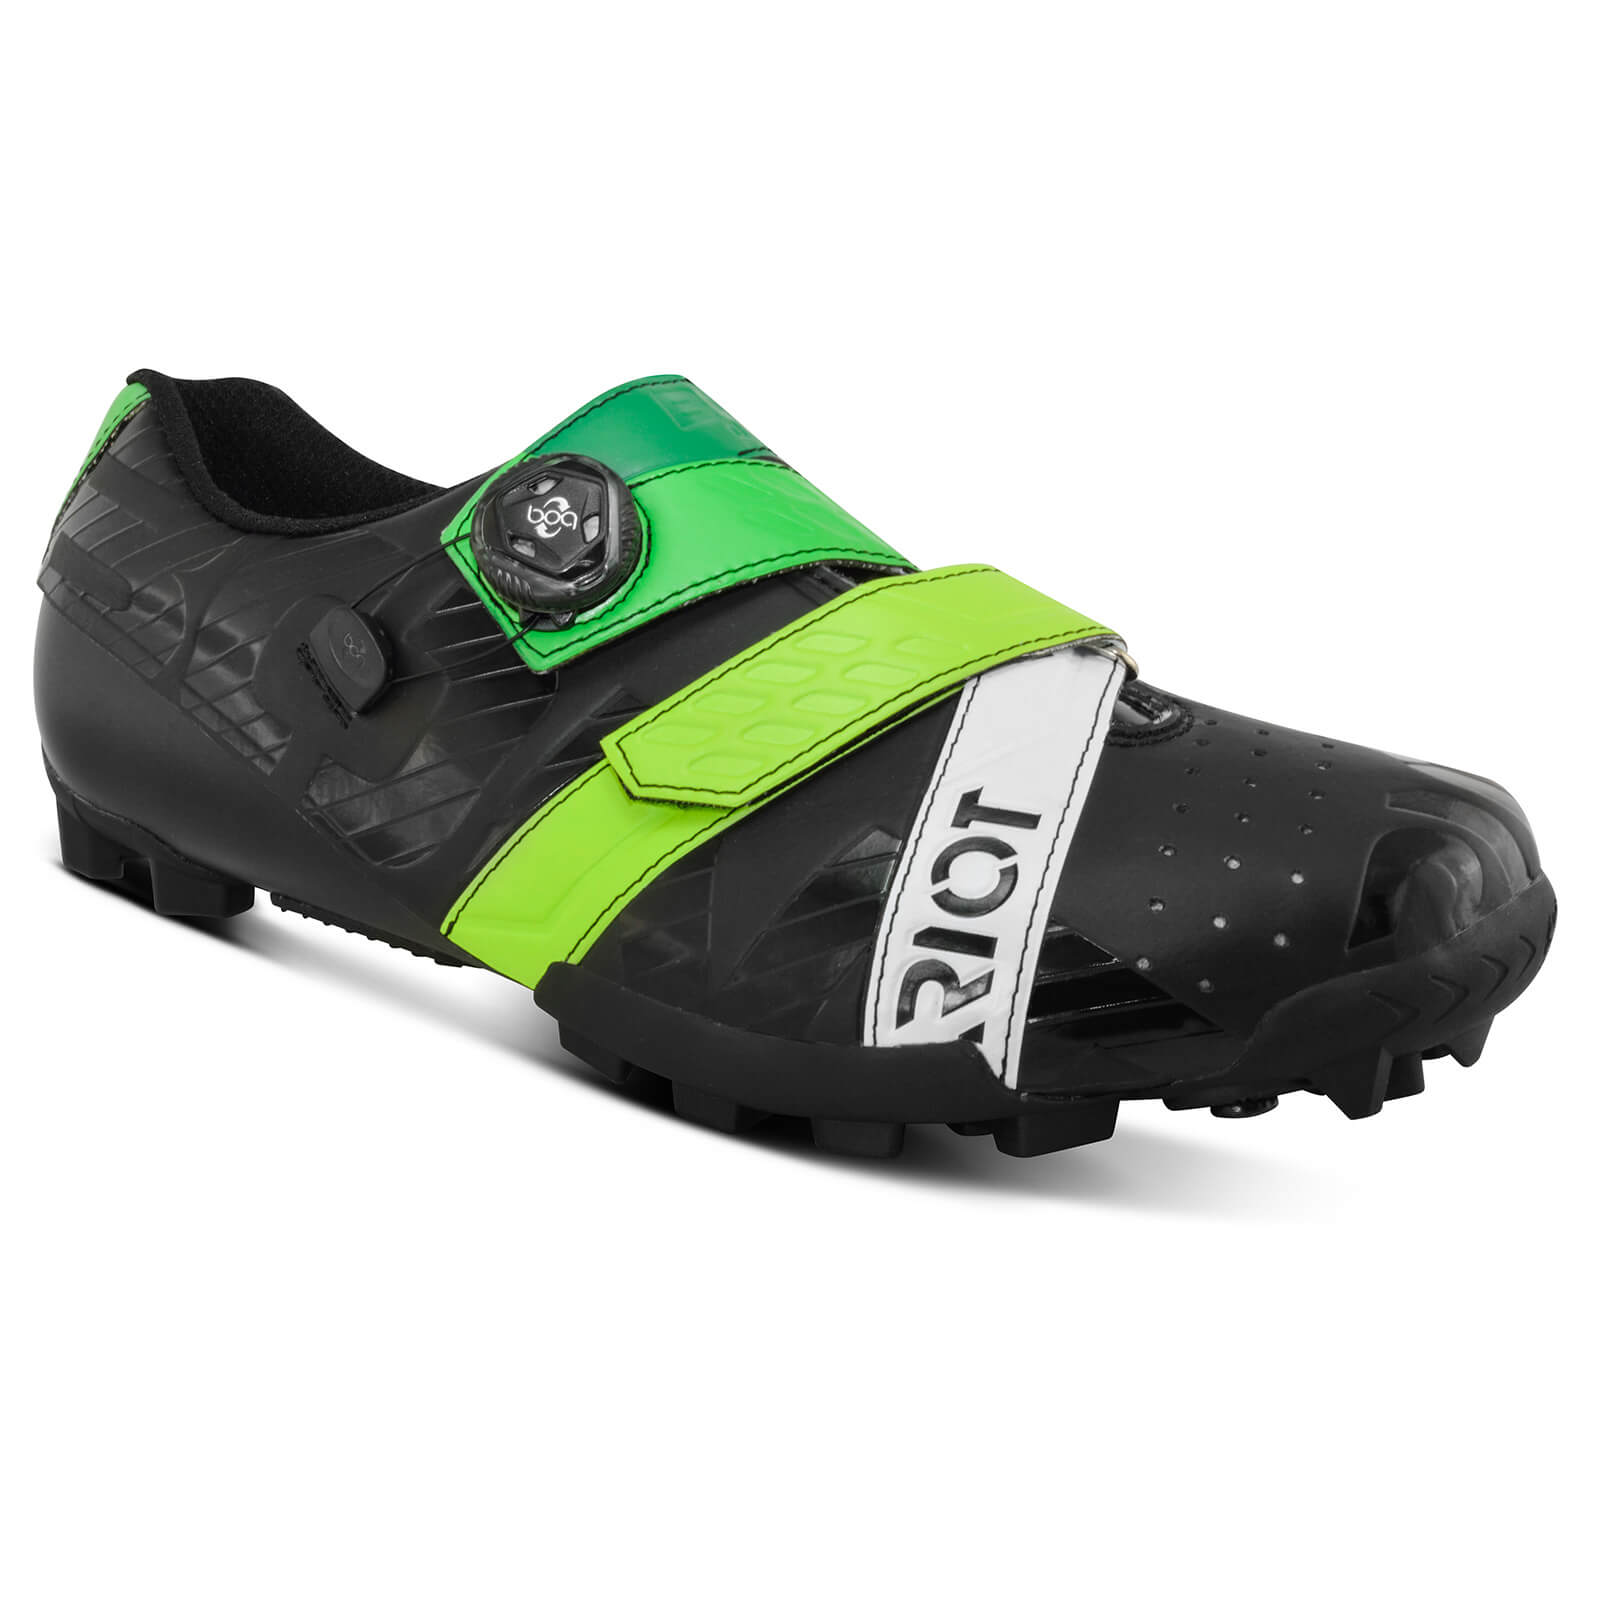 Bont Riot+ MTB Shoes - EU 44 - Black/Green